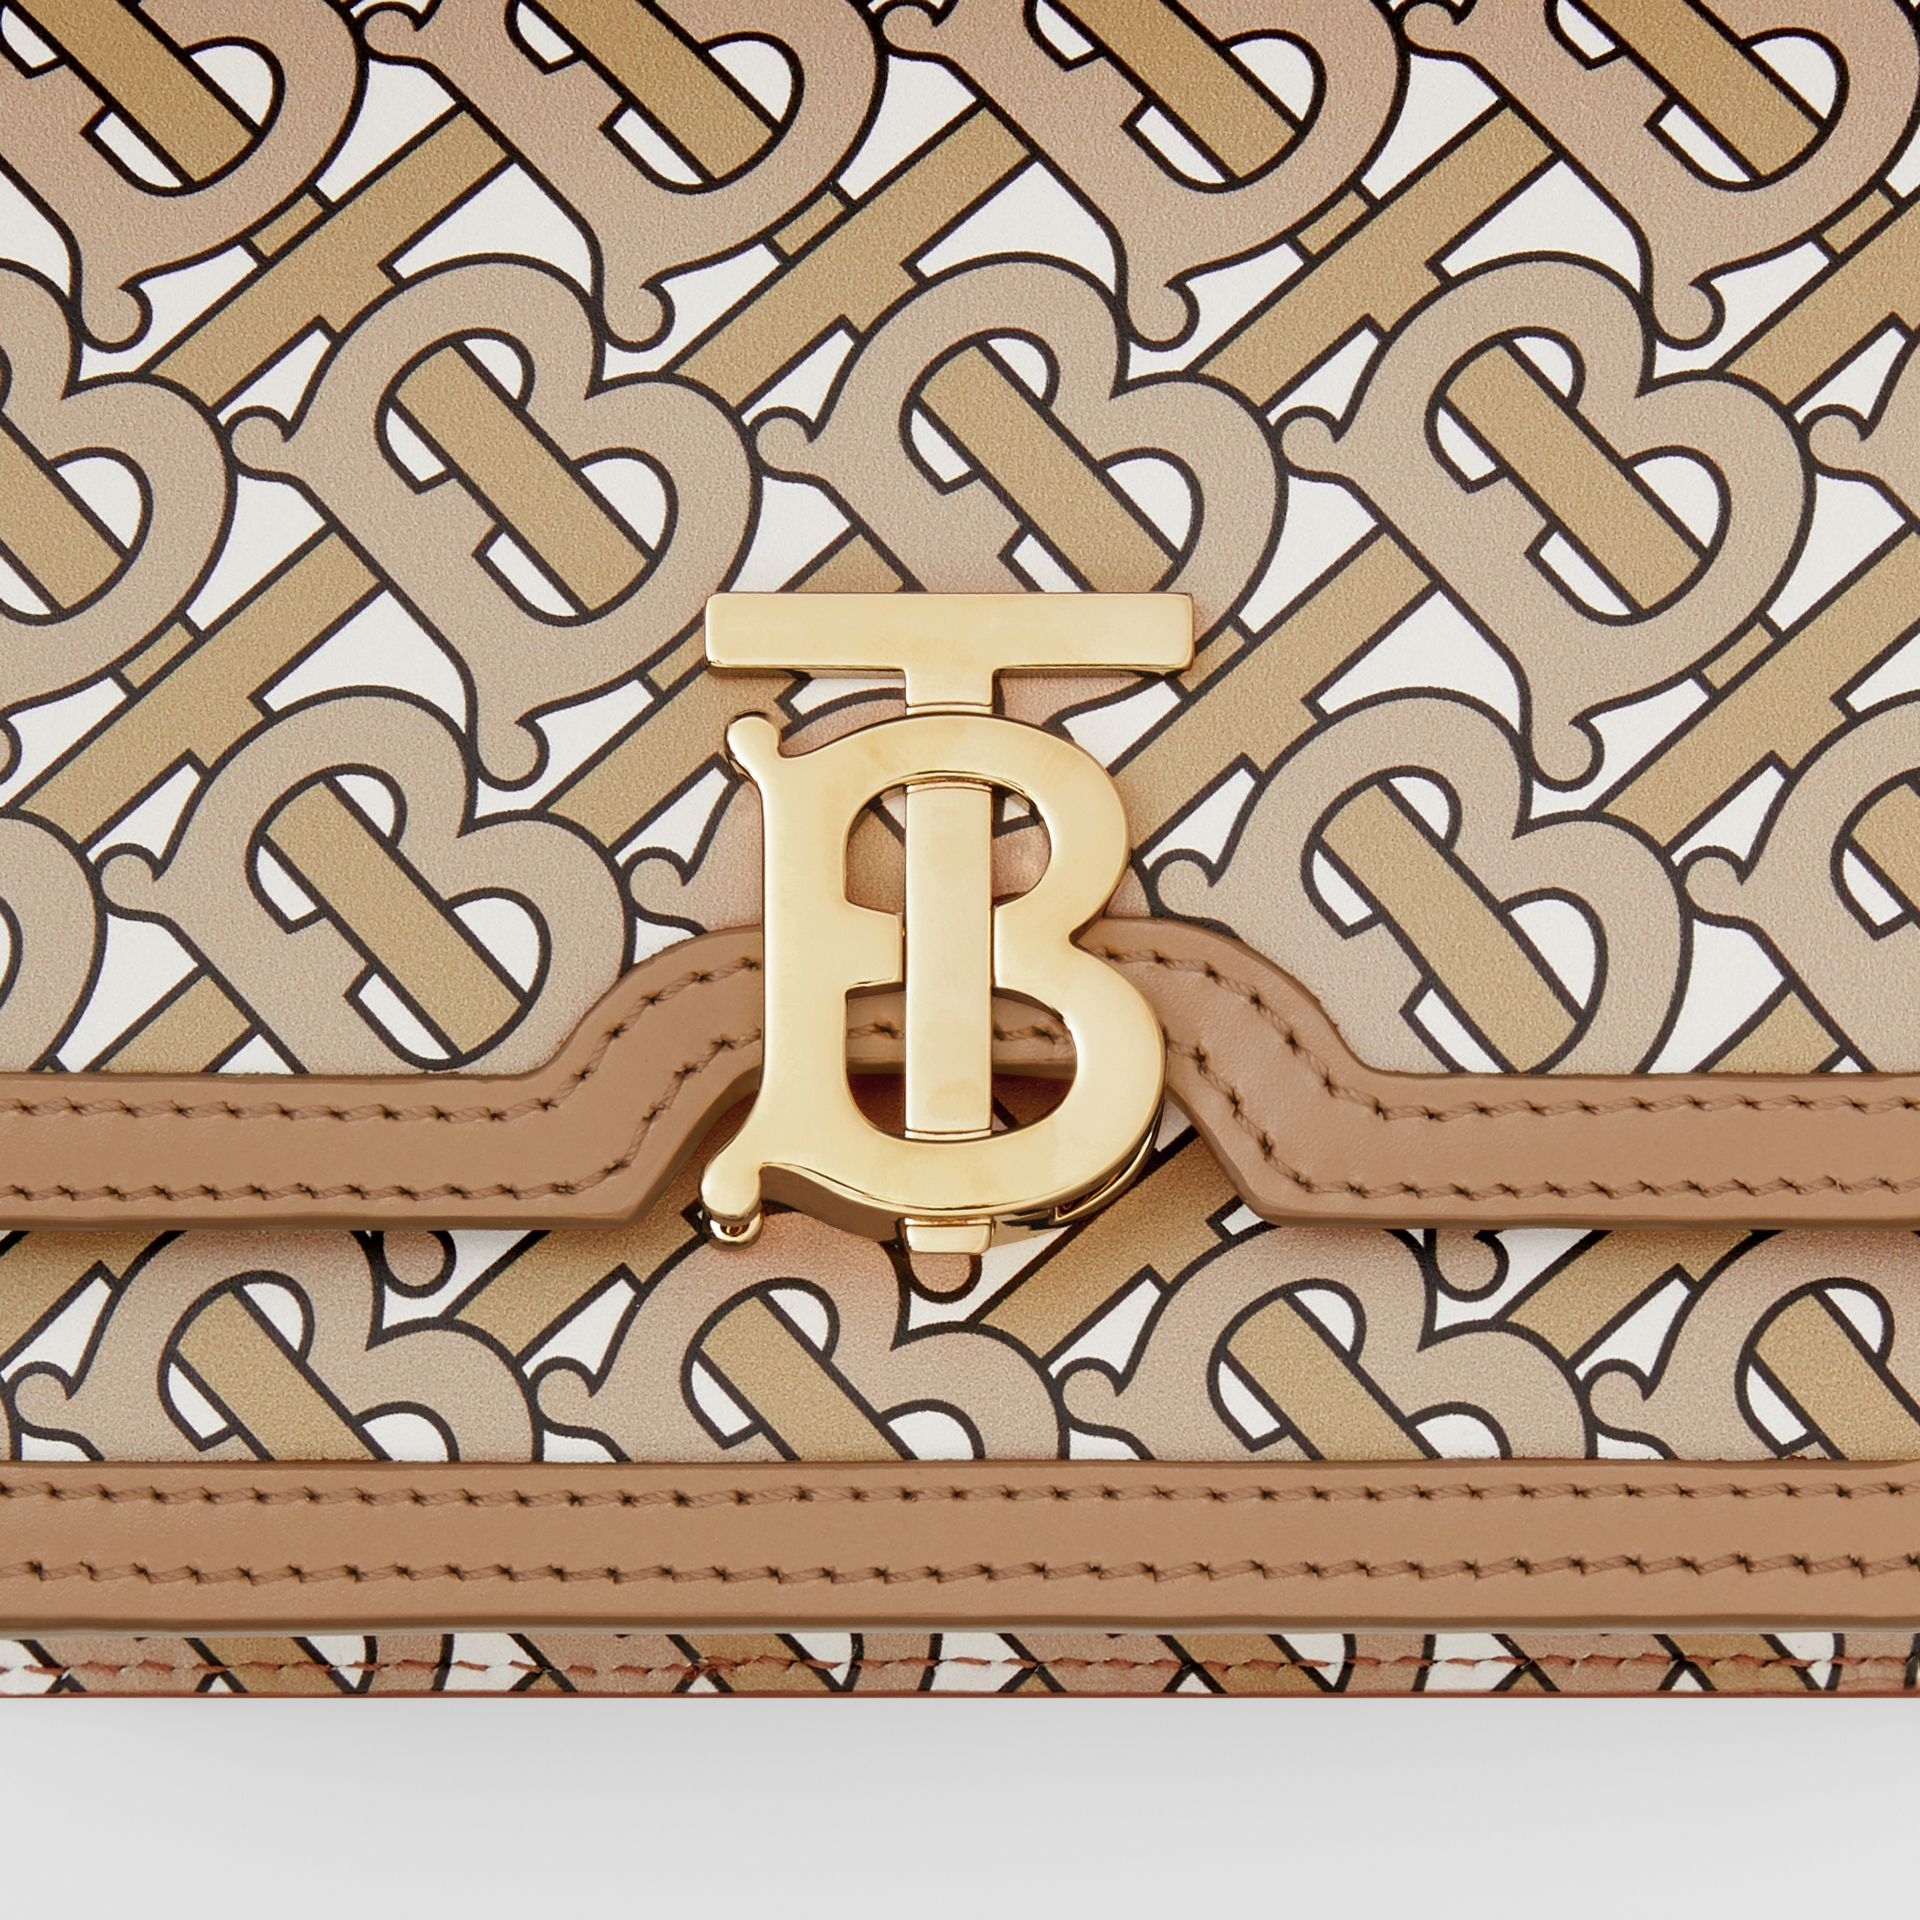 Mini Monogram Print Leather TB Bag in Beige - Women | Burberry United Kingdom - gallery image 1